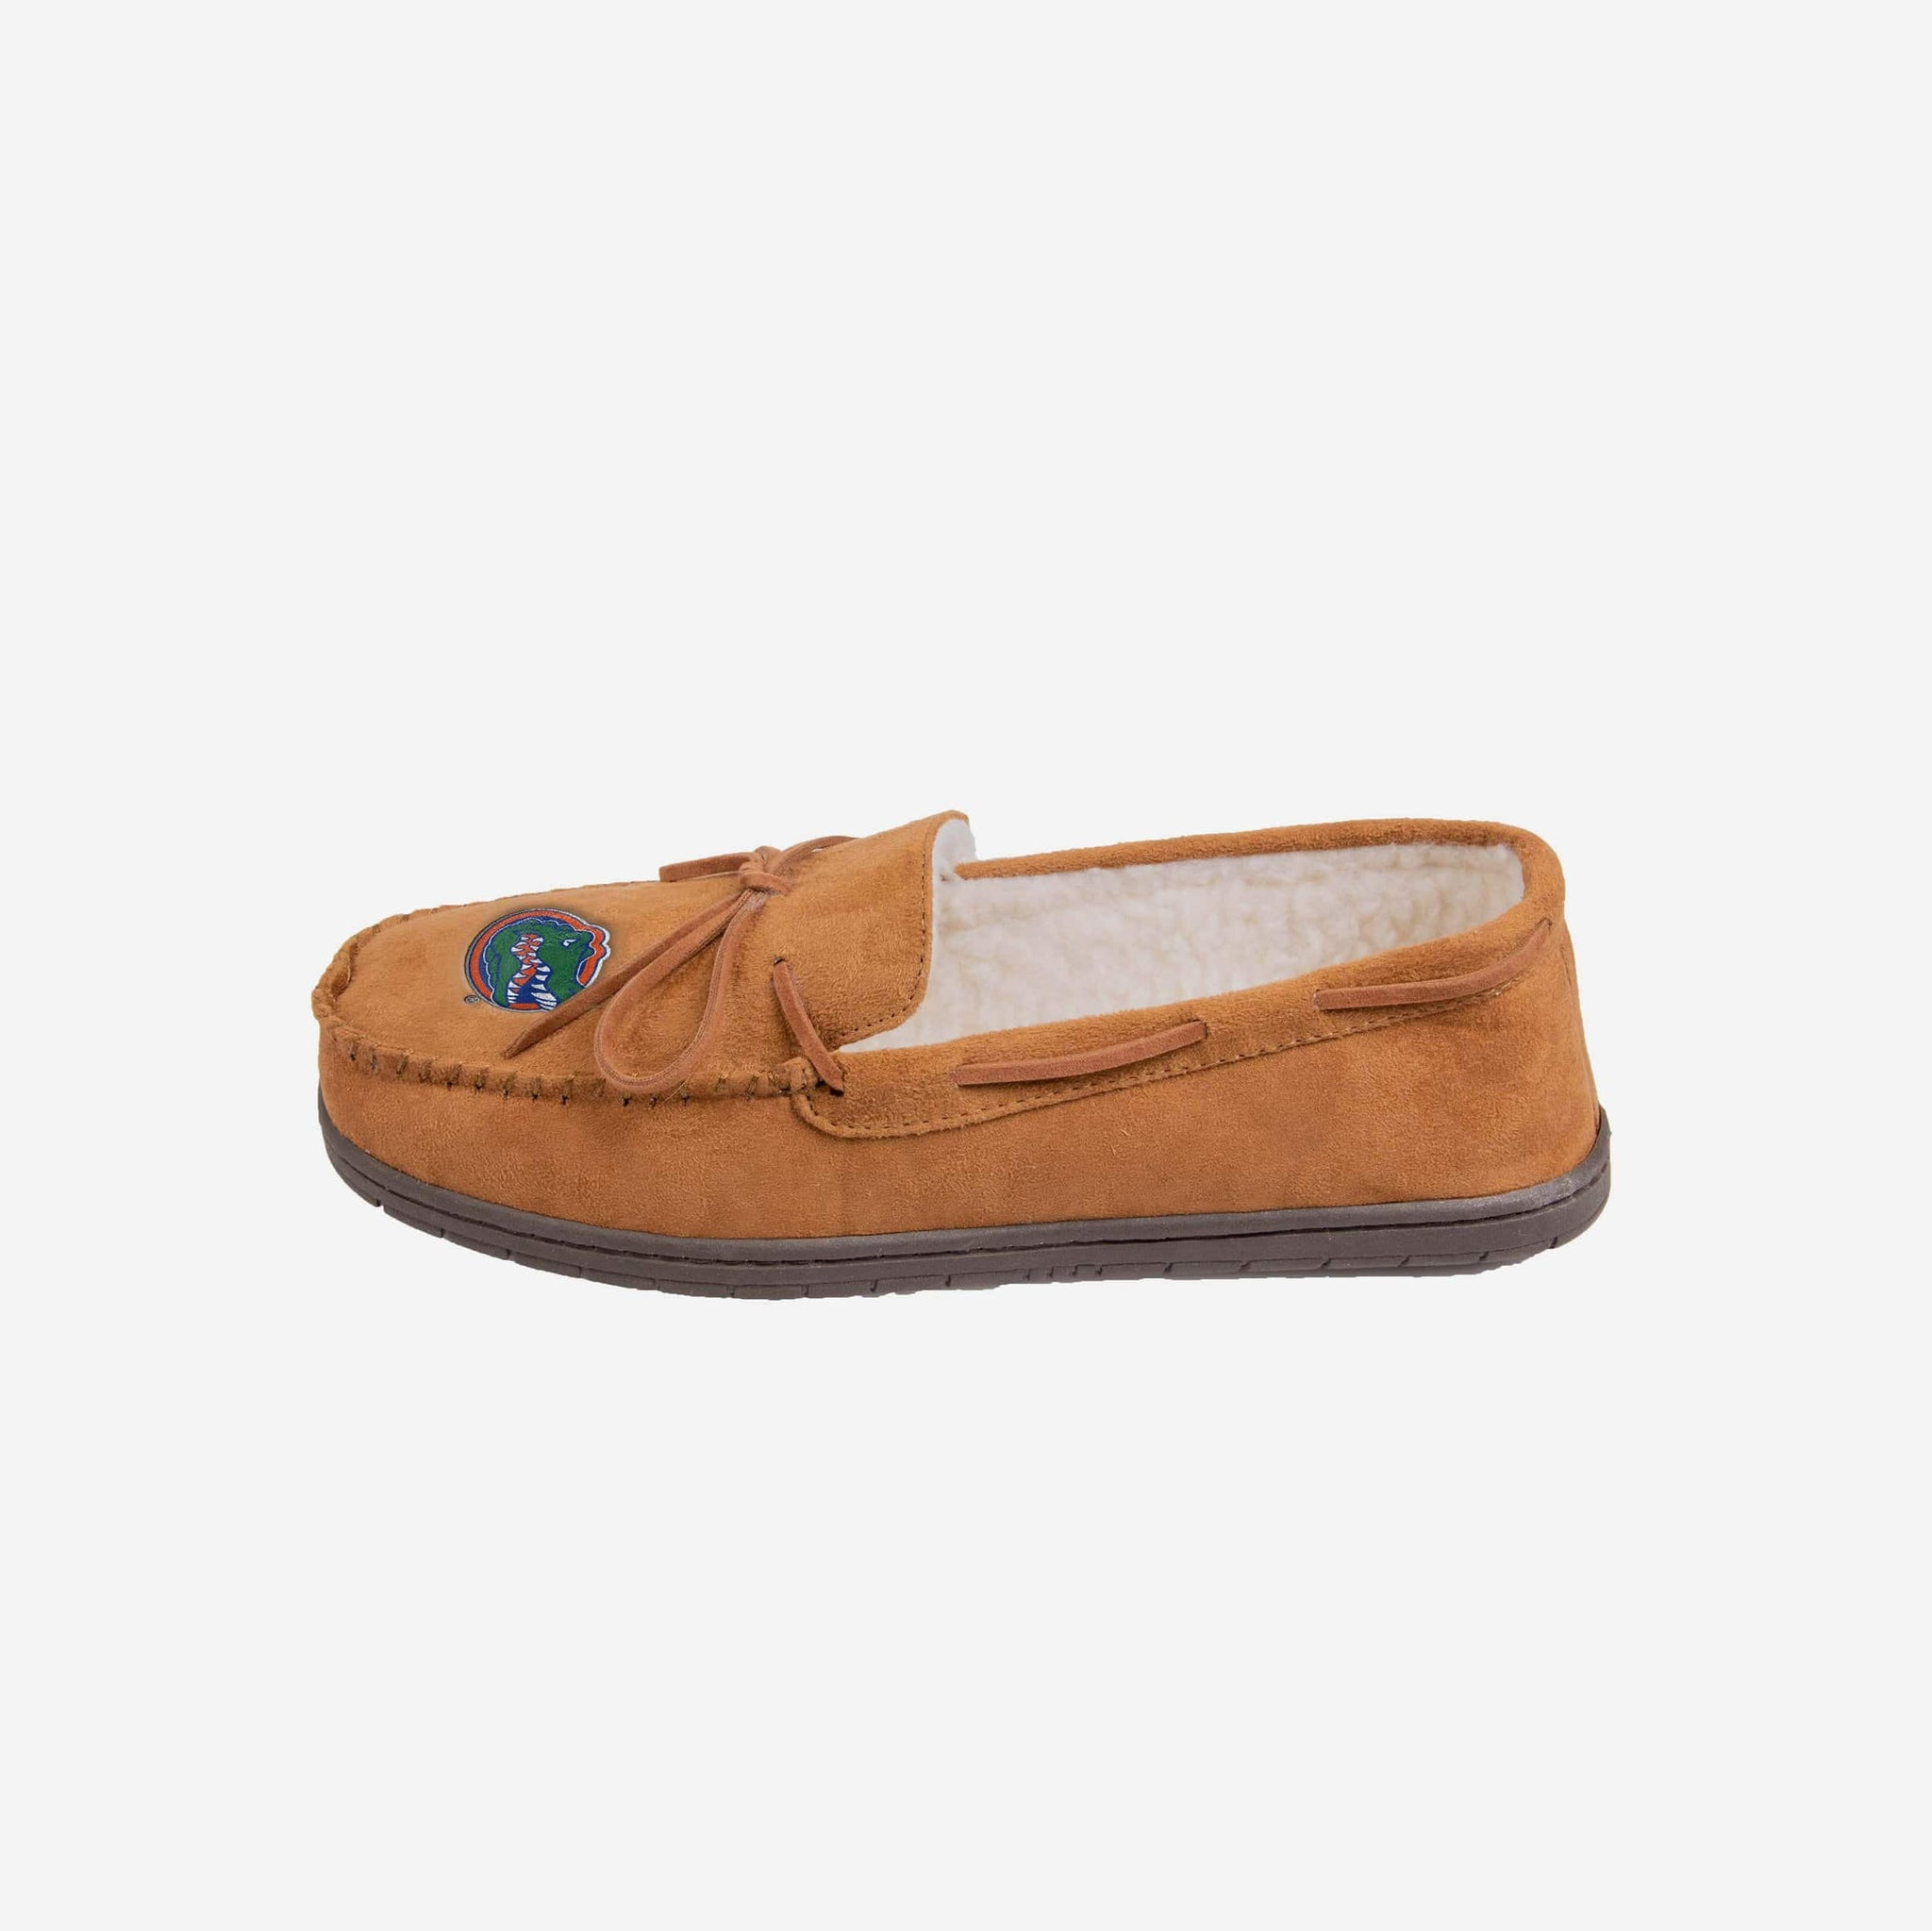 Florida Gators Moccasin Slipper FOCO - FOCO.com